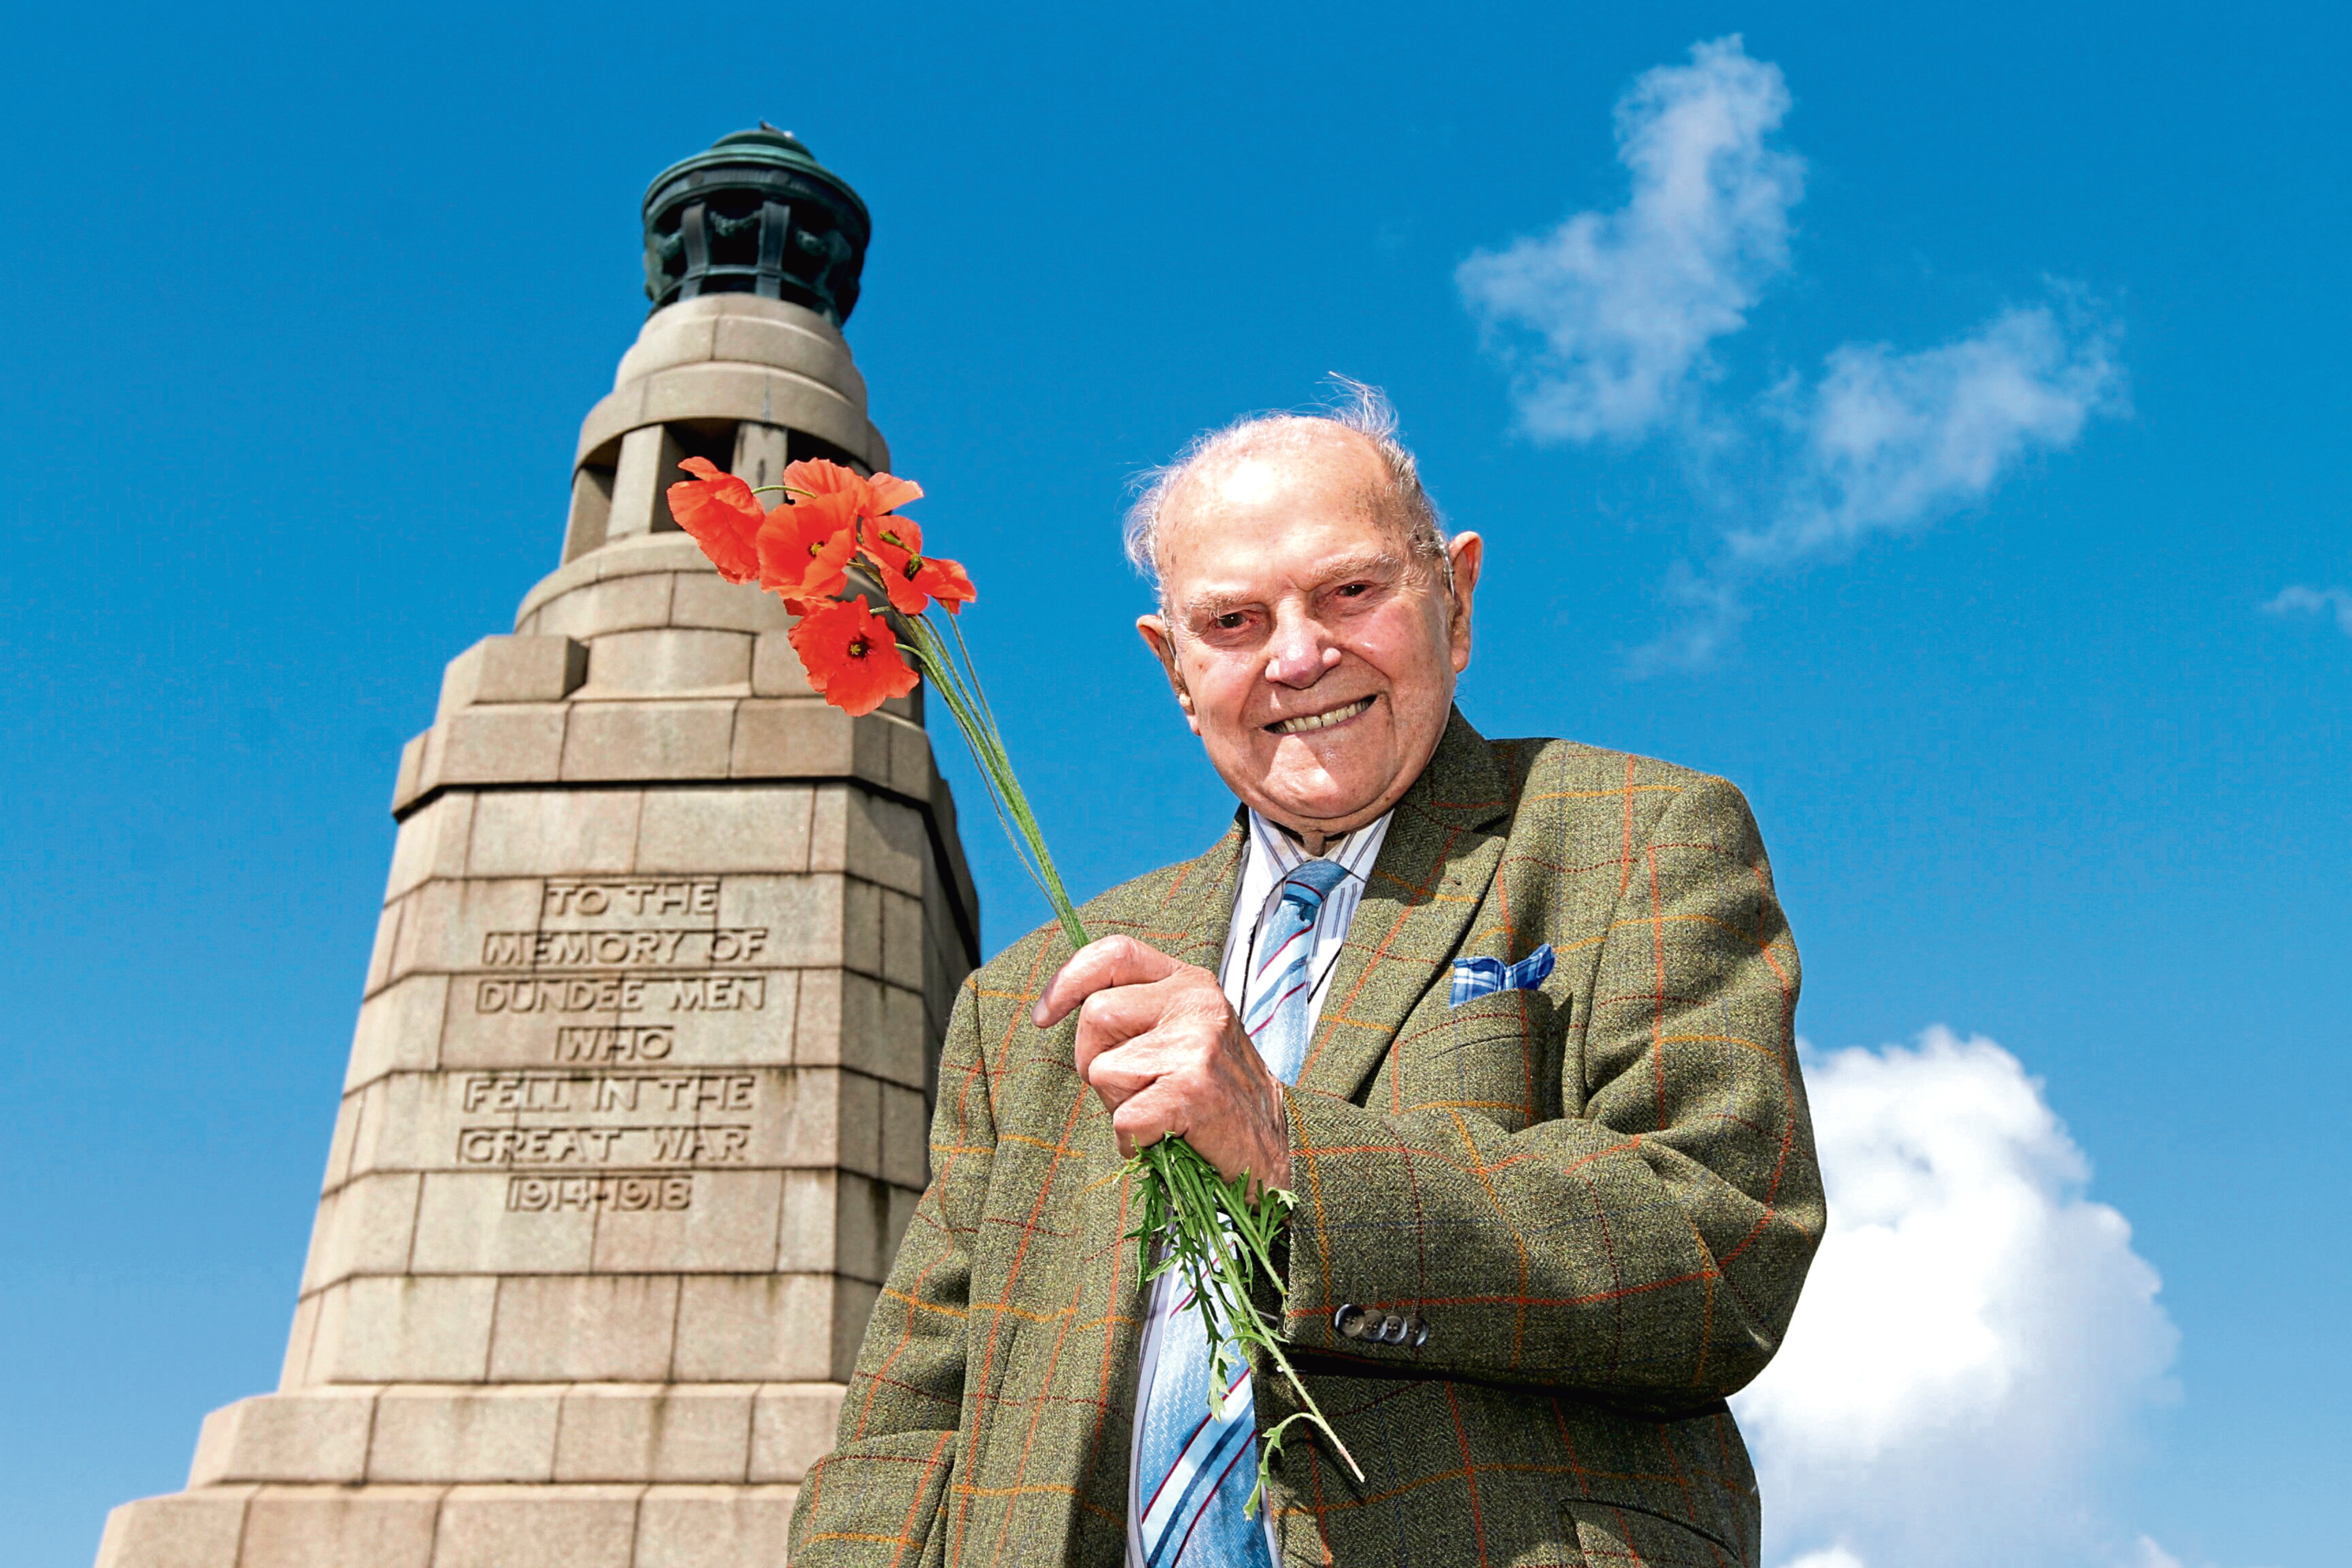 Jack Stephen pictured on top of the Law when he was a sprightly 100 years old.